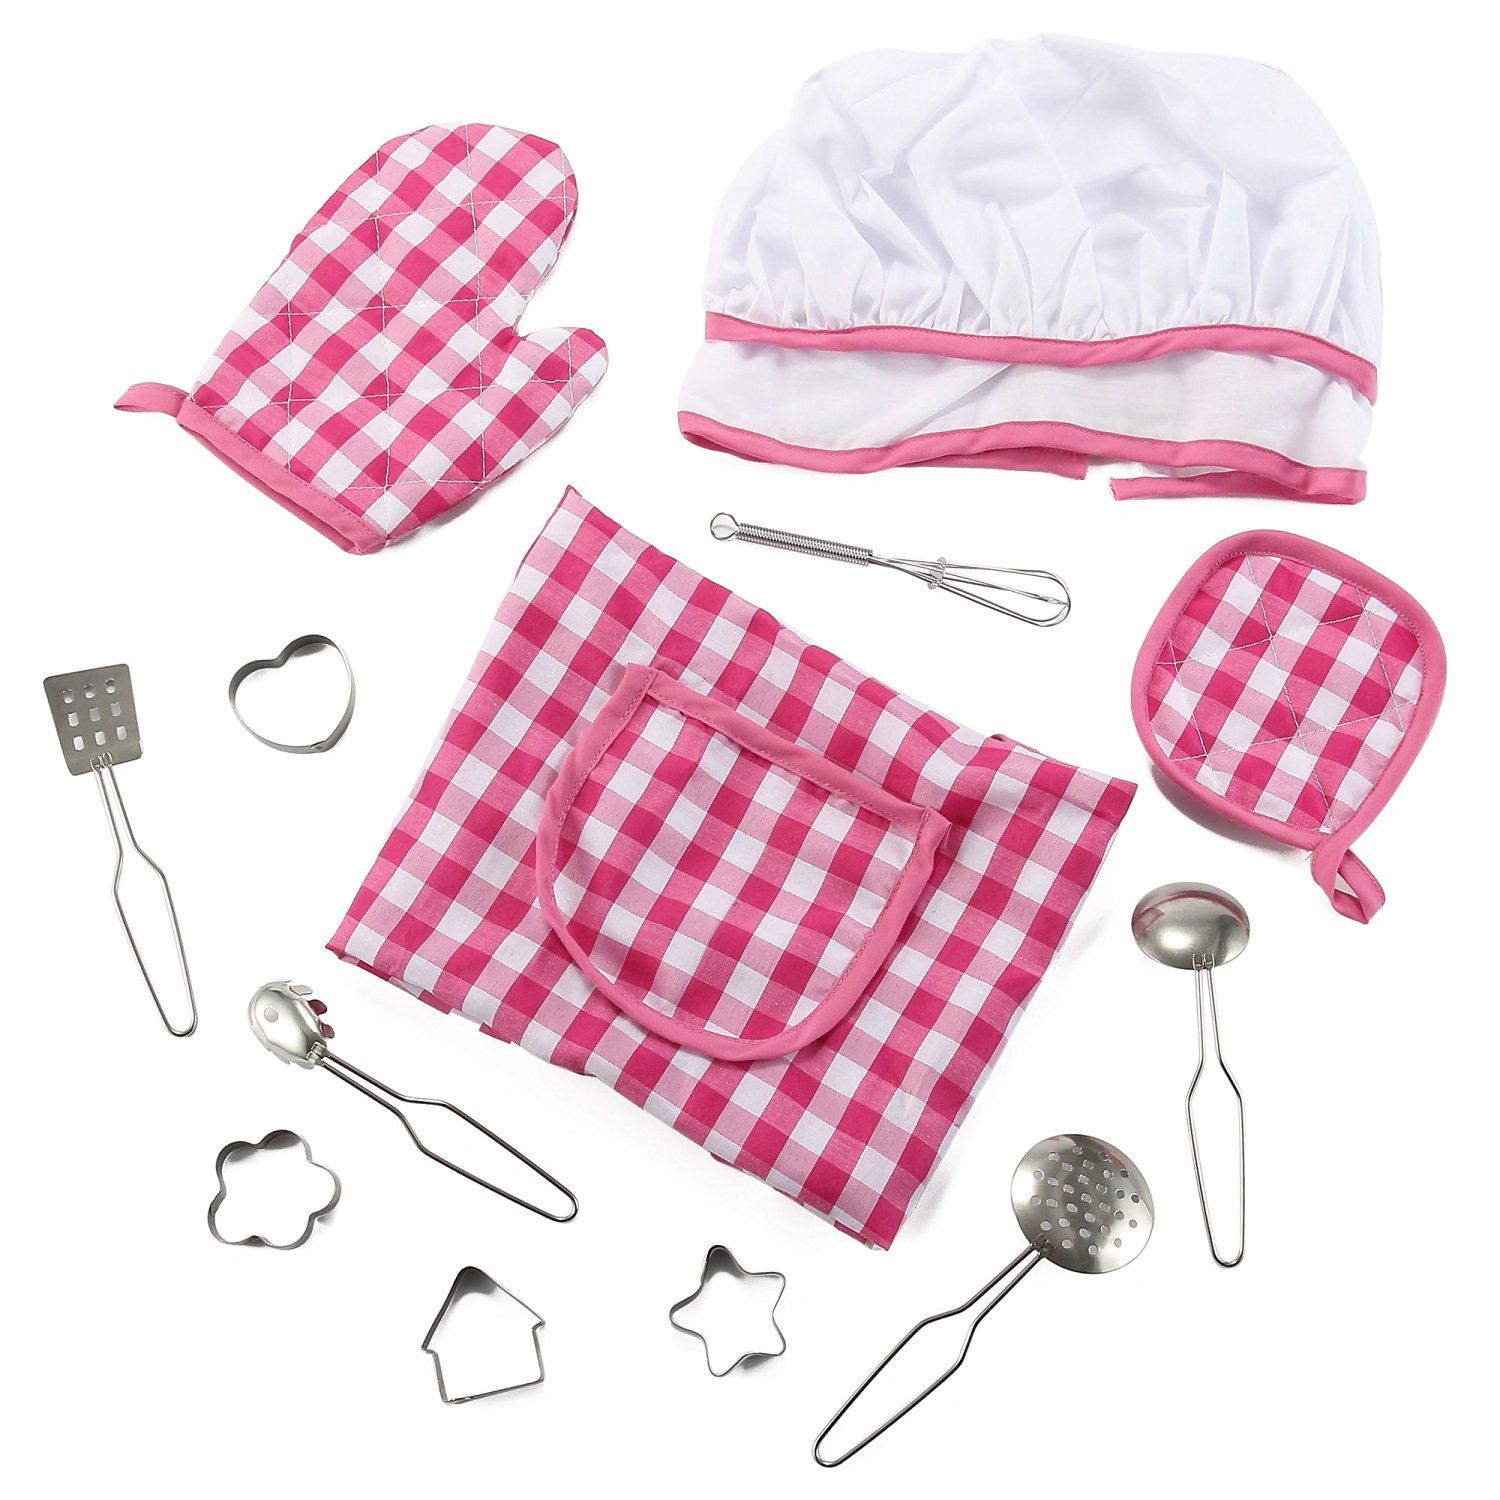 Liberty Imports 13 Piece Deluxe Kids Cooking and Baking Set | Includes Apron, Chef Hat, Mitt & Utensils for Dress Up | Chef Costume Career Role Play Kit Toy - Ideal Gift for 3, 4, 5, 6 Year Old Girls